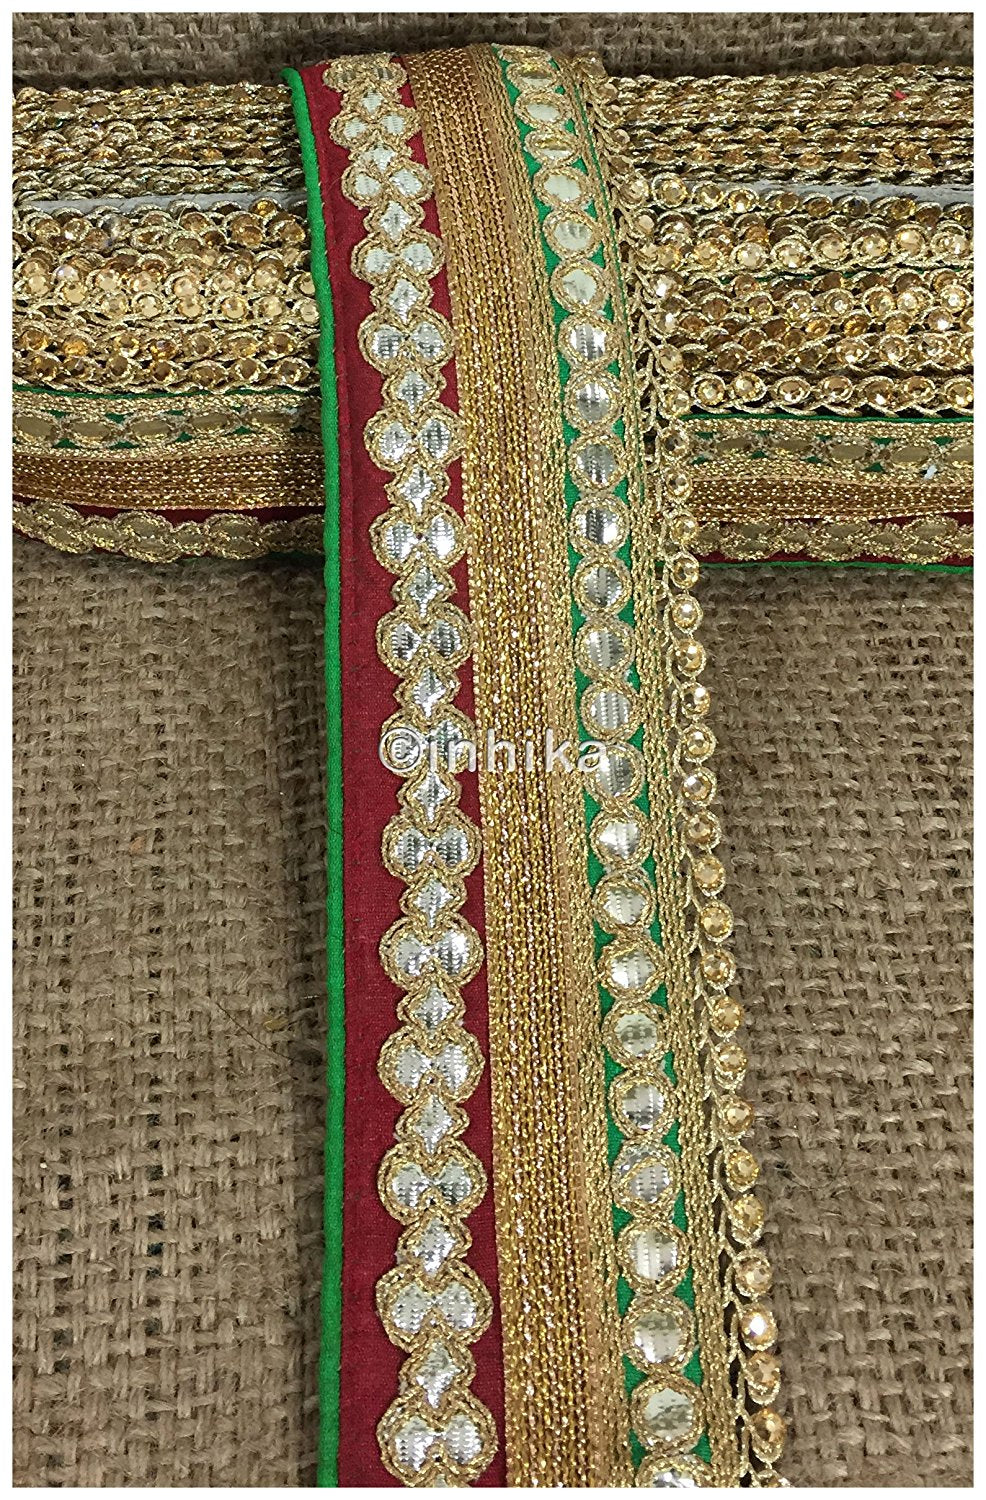 lace trim fabric decorative fabric trim ribbon for clothing Maroon-Green-Embroidery-Gota-Patti-3-Inch-Wide-3302